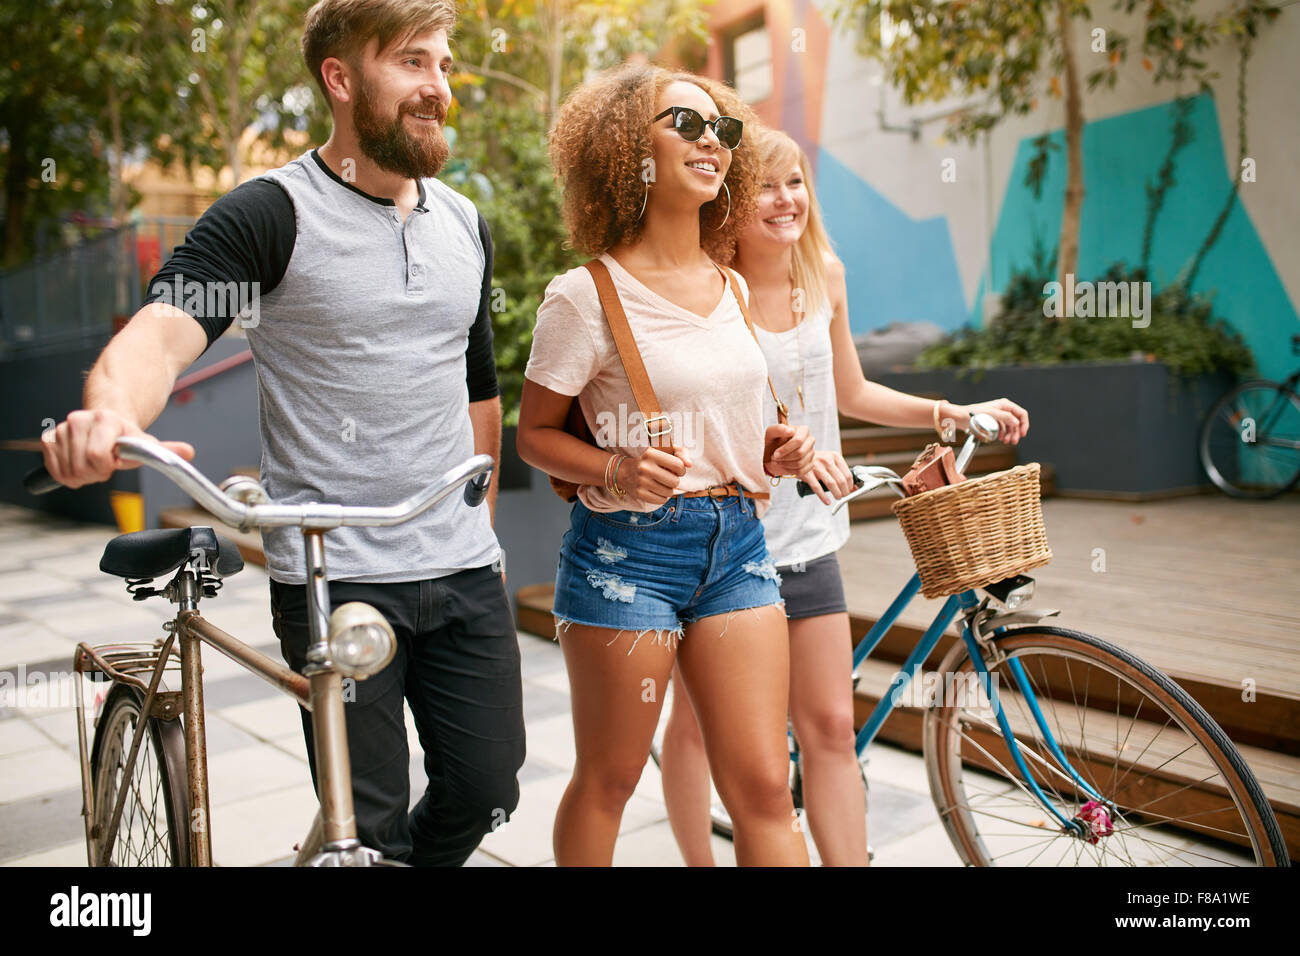 Outdoor shot of young people walking on city street with their bikes. Three friends with bicycles a road. - Stock Image